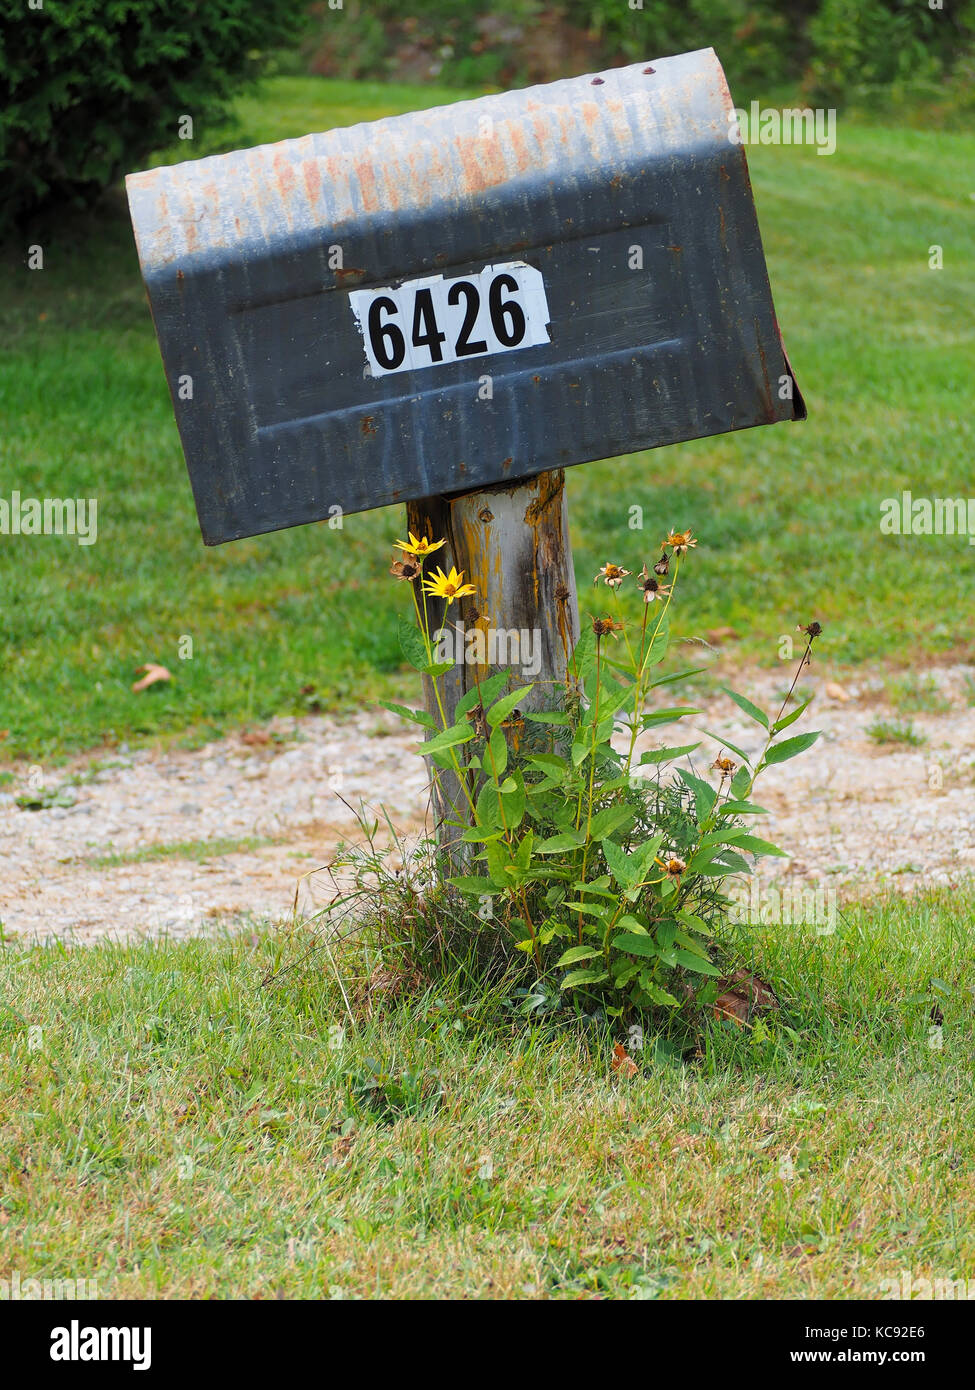 residential mailboxes side view. Metal Residential Mailbox - Stock Image Mailboxes Side View